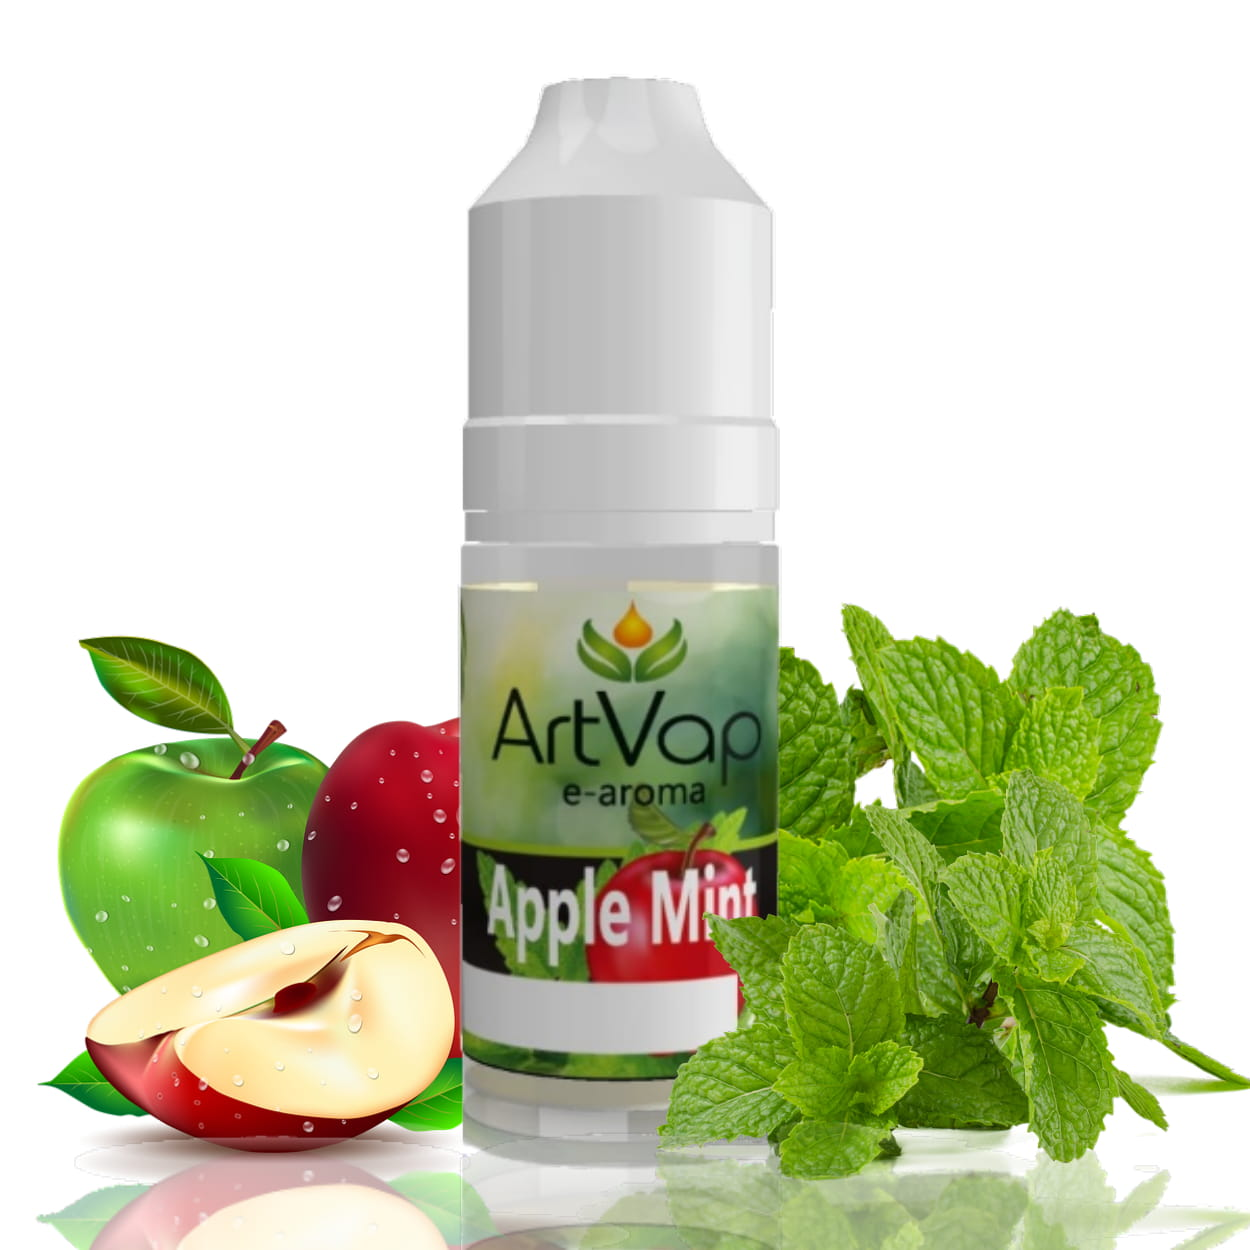 10 ml ArtVap - Apple Mint